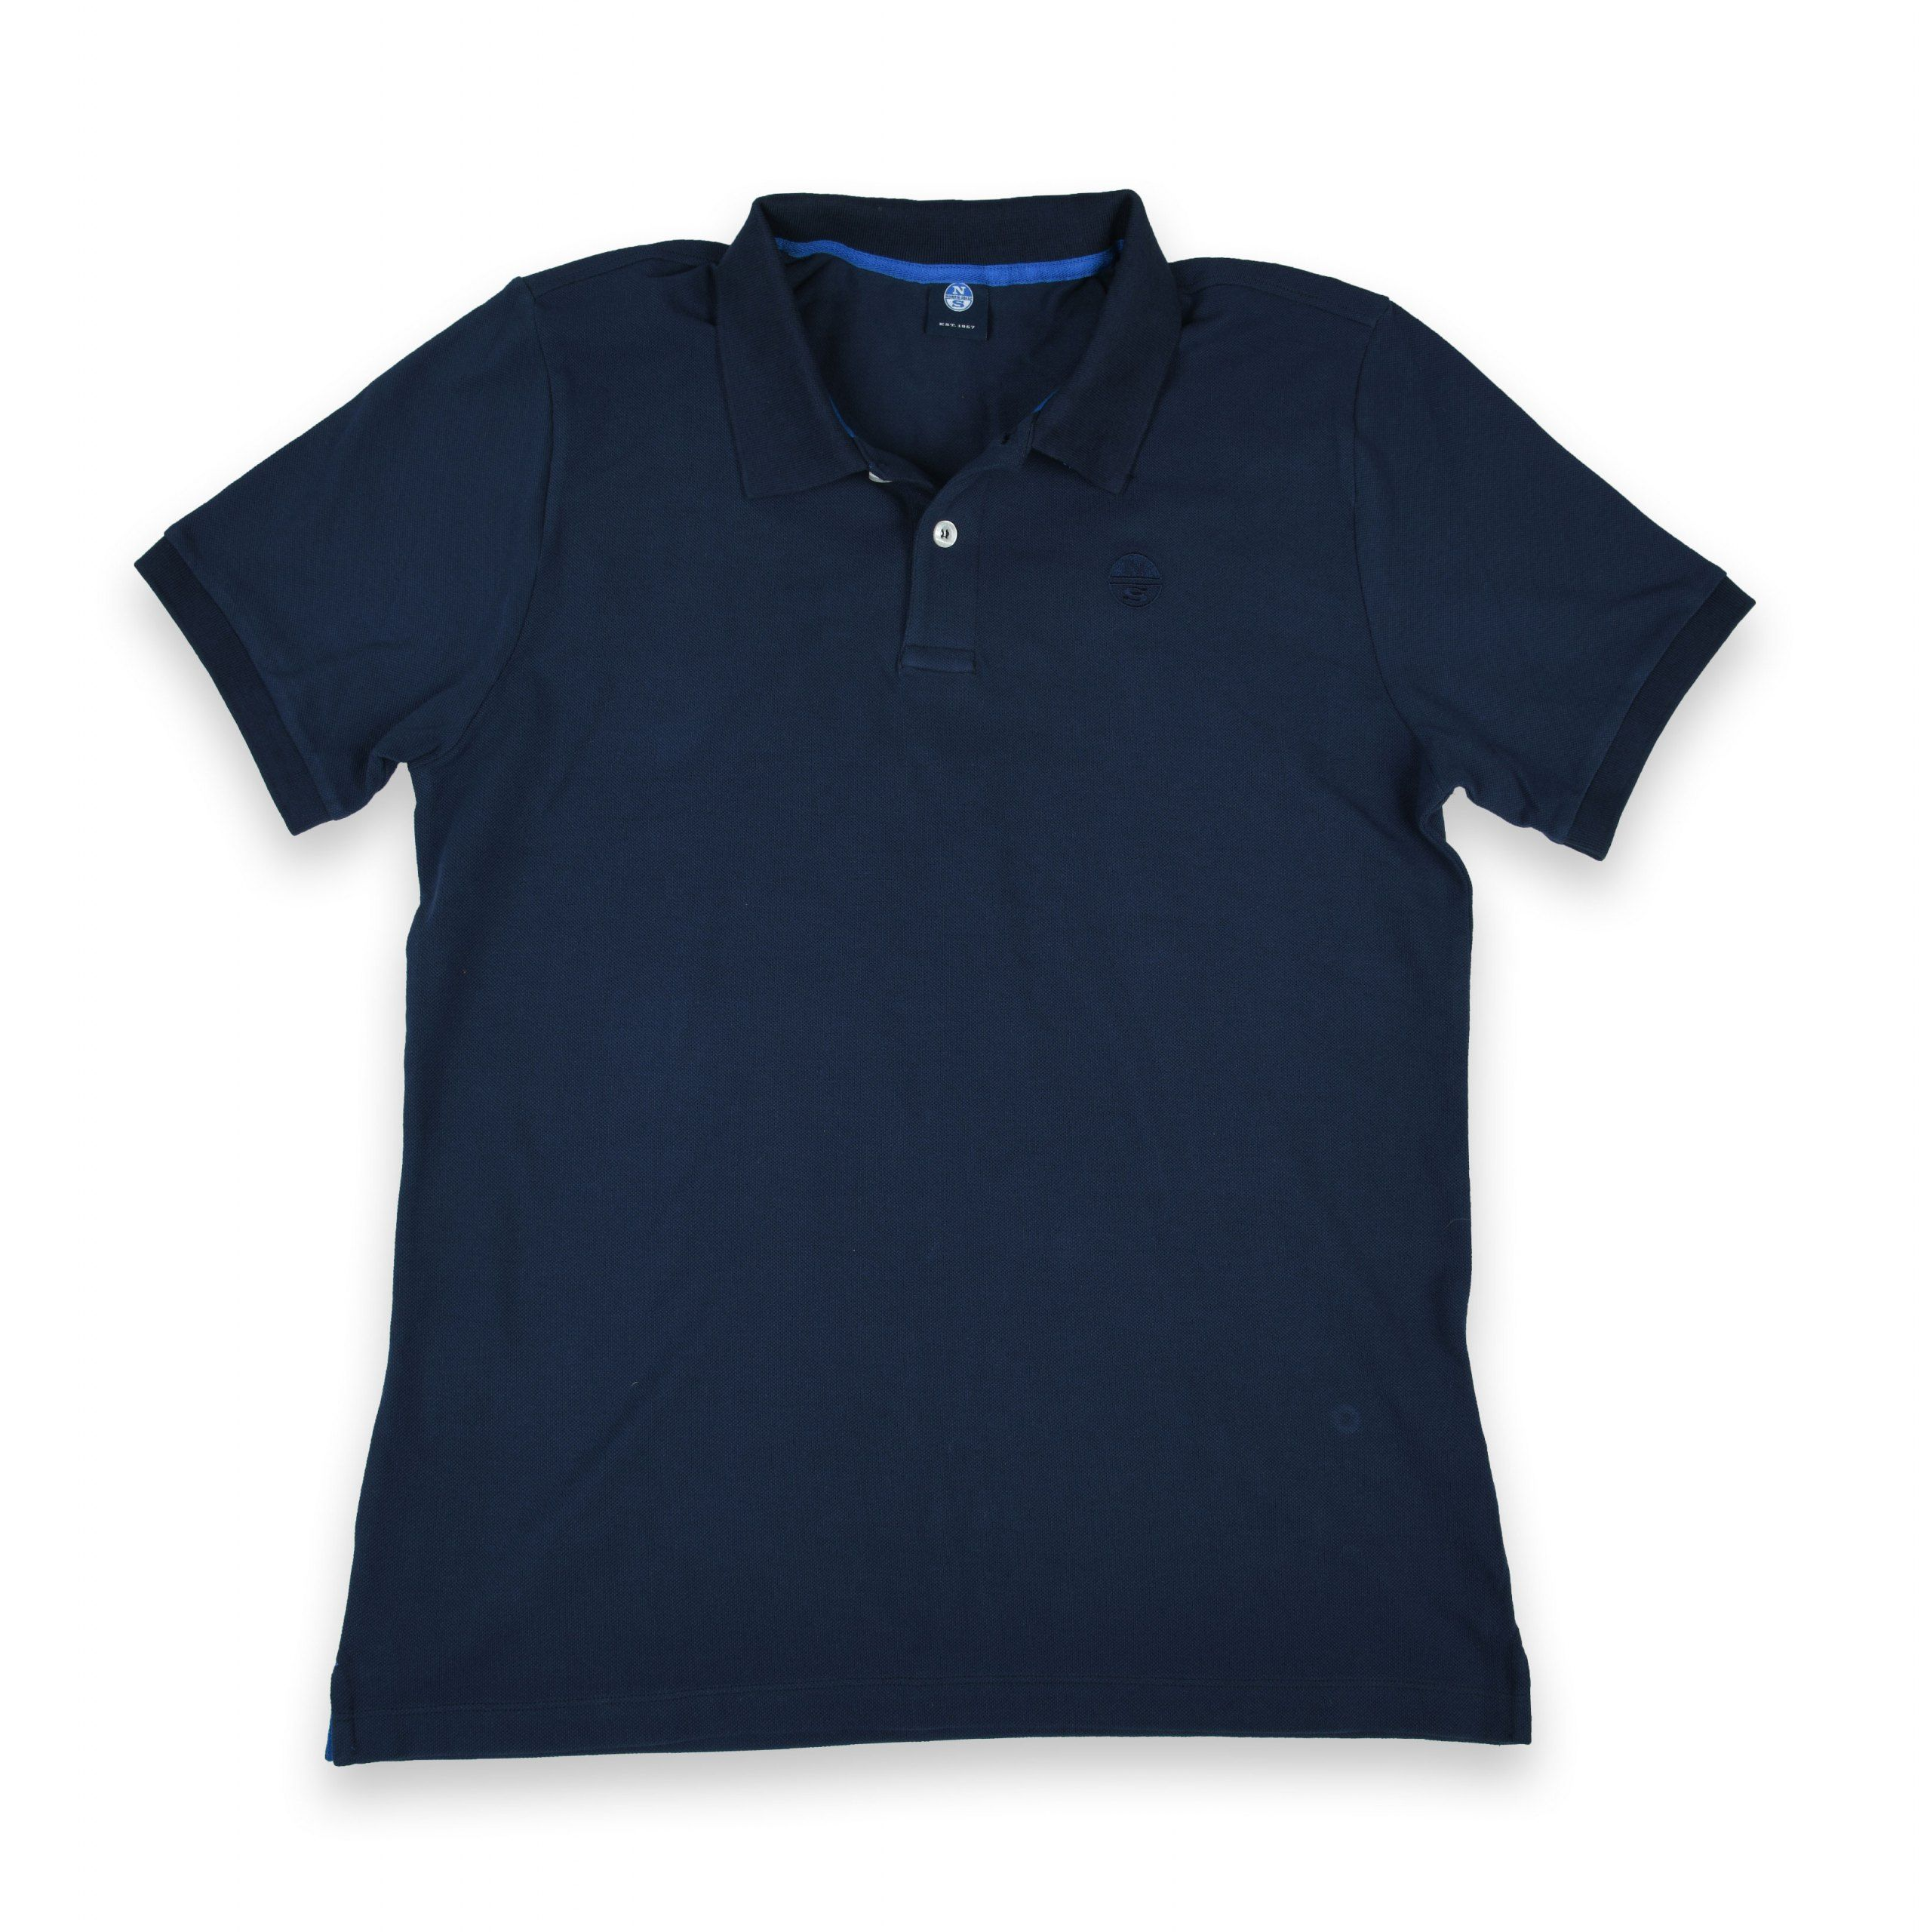 Poloshow North Sails Polo Navy Blue 6923280000802520 1